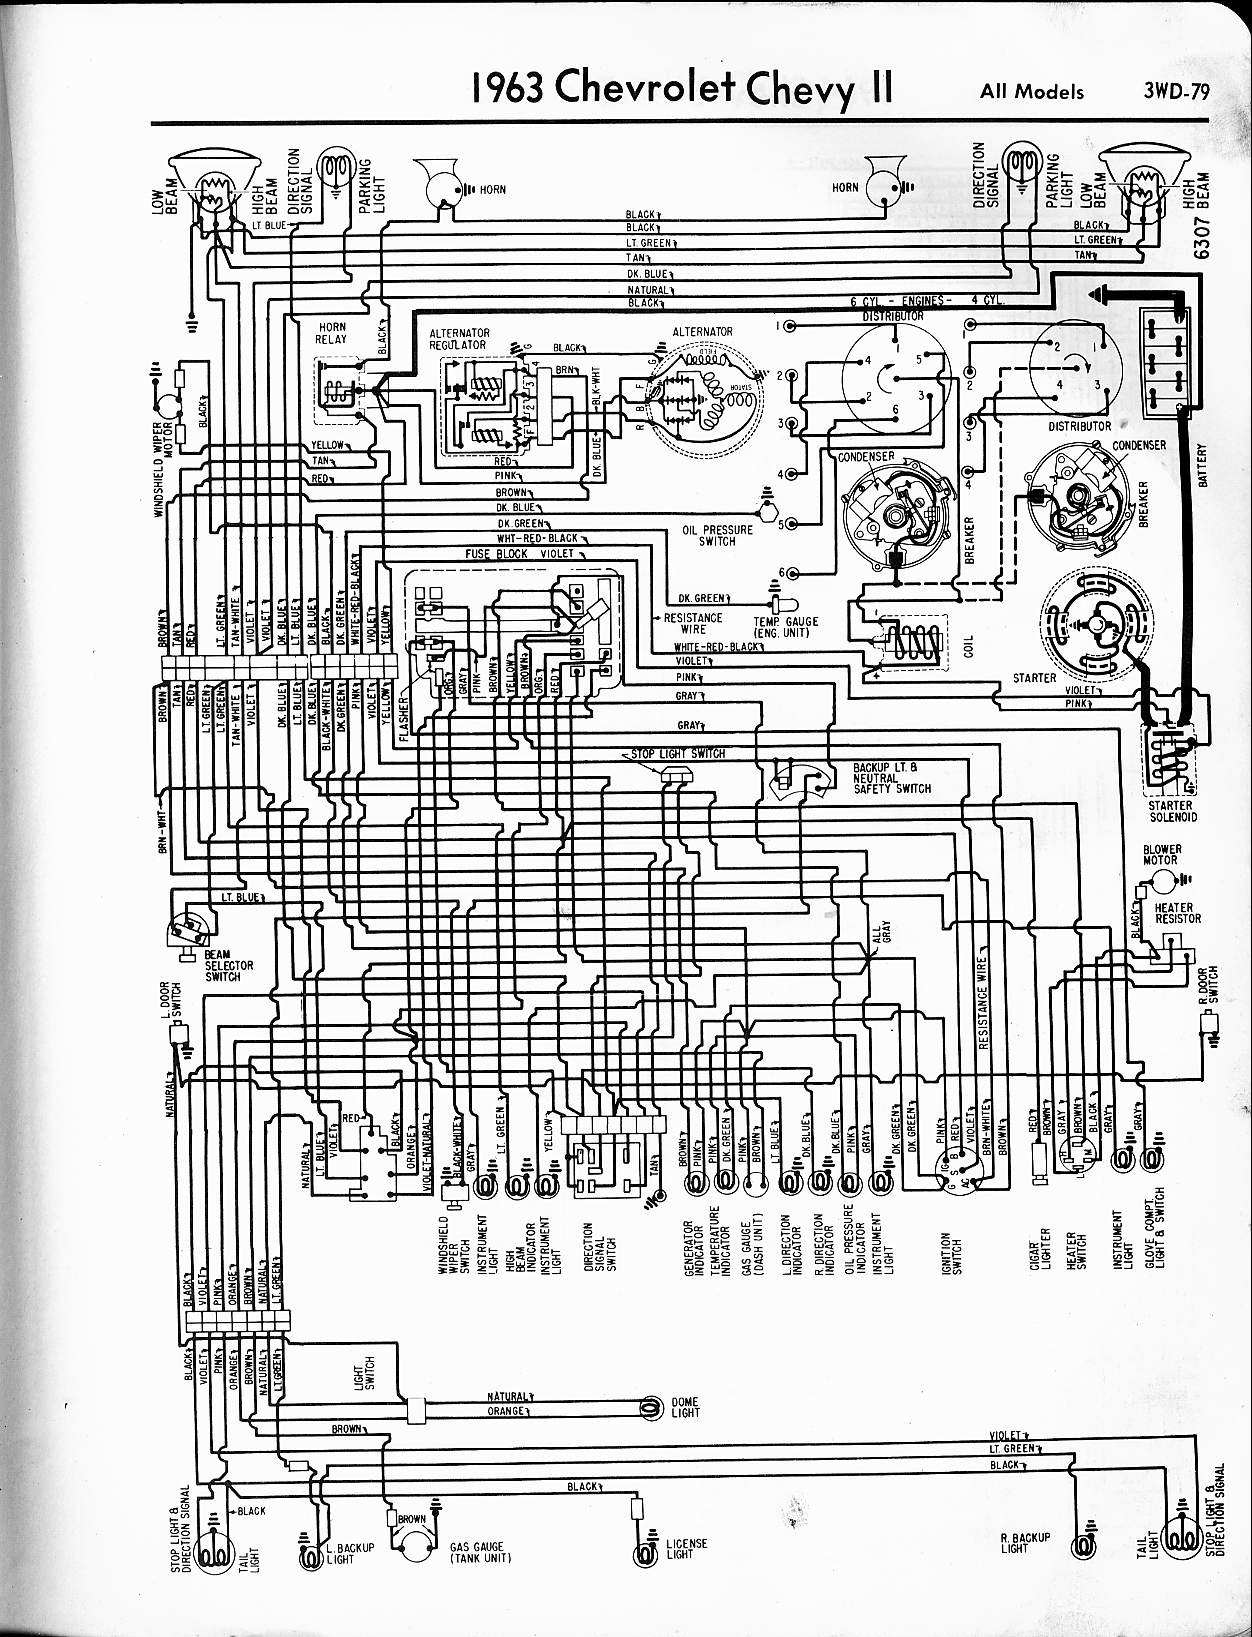 MWireChev63_3WD 079 57 65 chevy wiring diagrams 3 Wire Headlight Wiring Diagram at nearapp.co